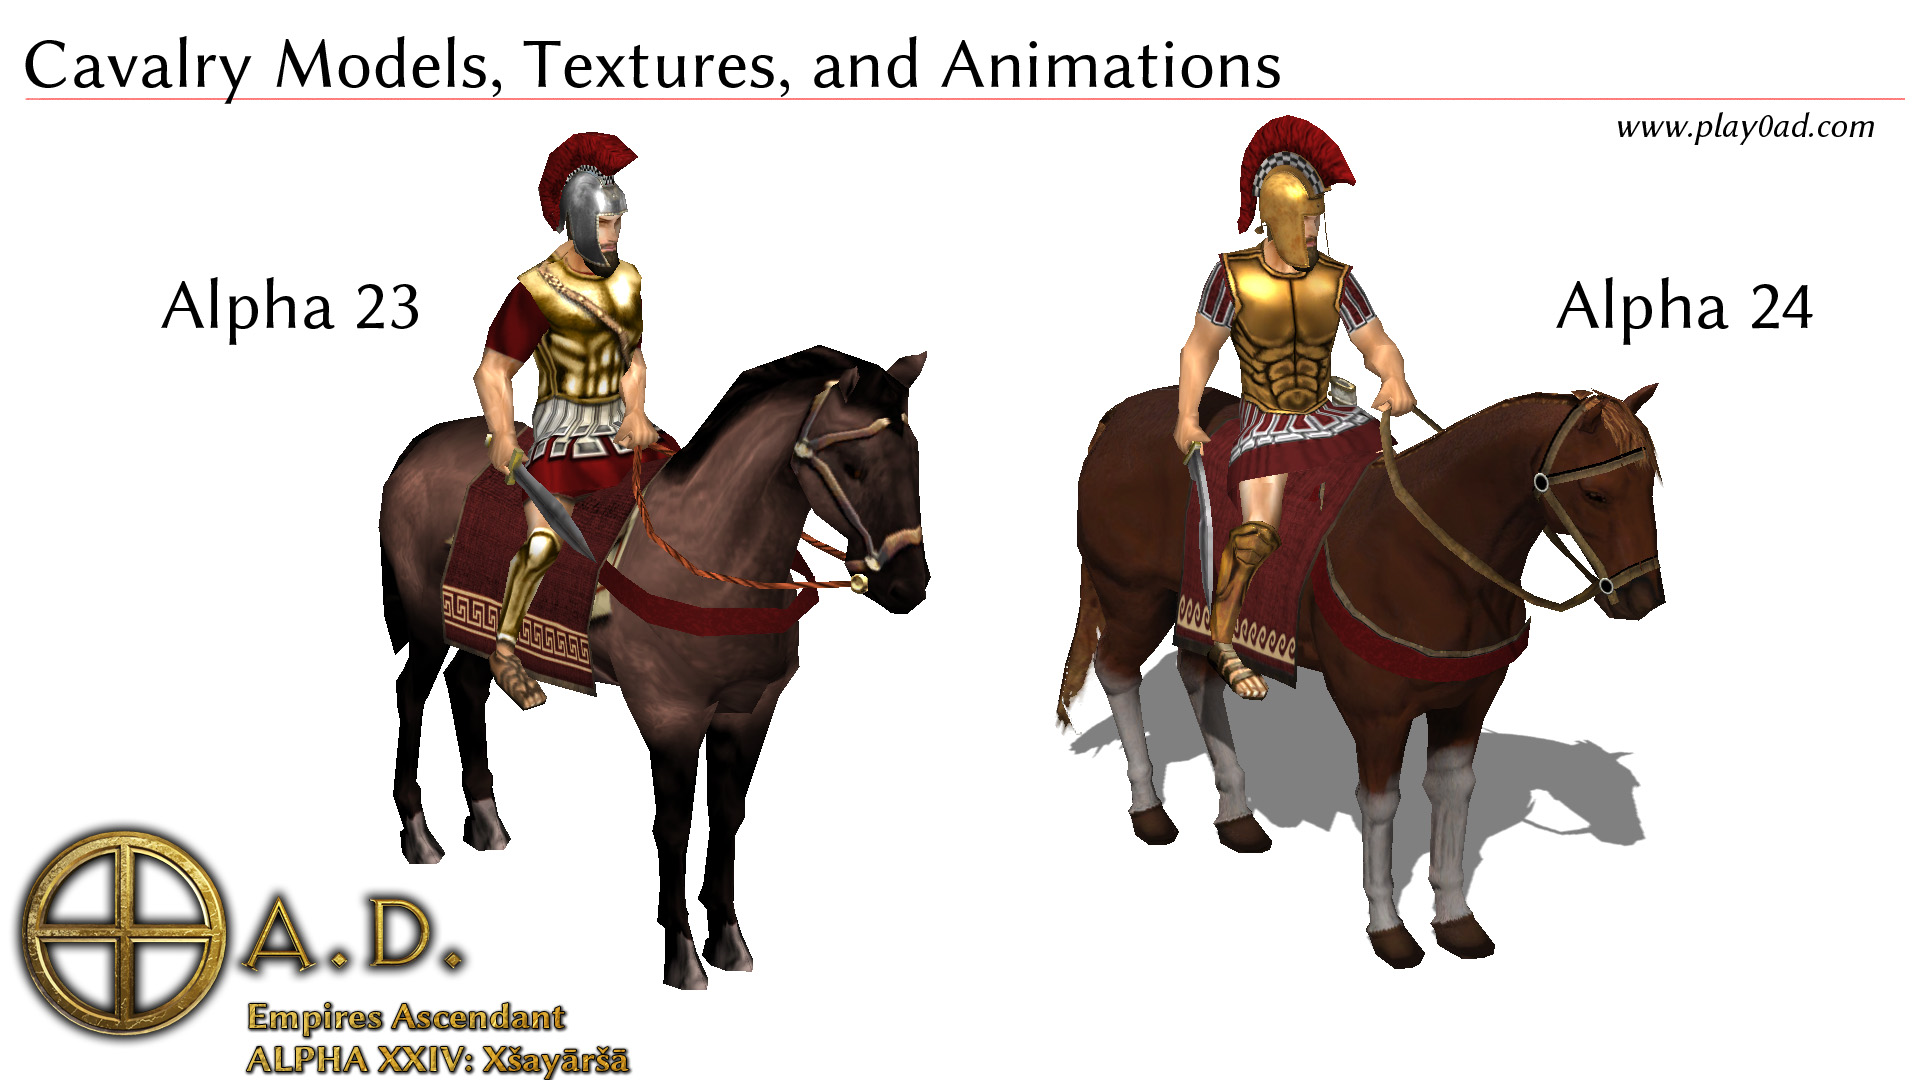 Cavalry Models, Textures, and Animations